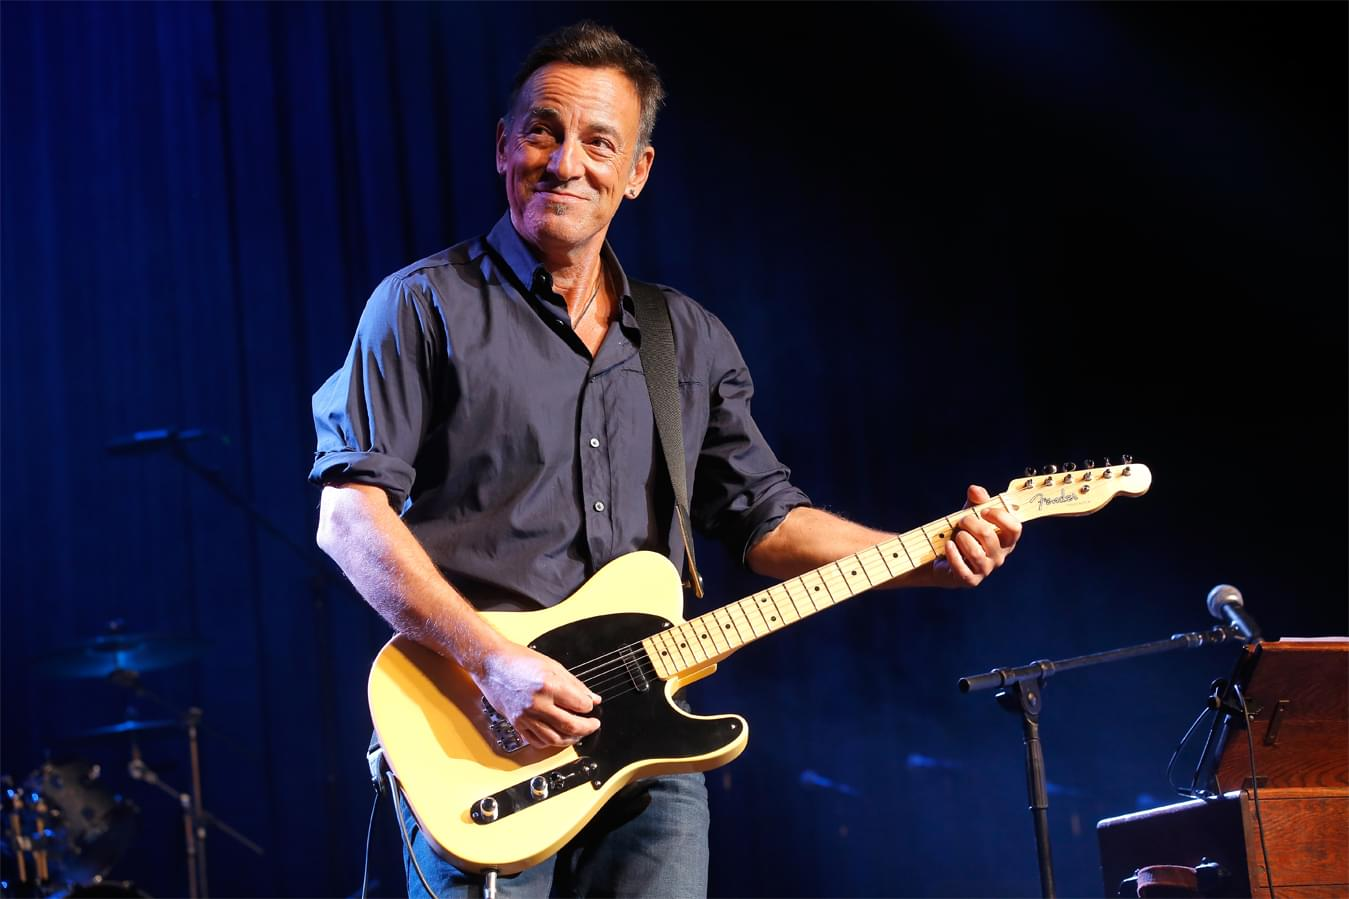 Bruce Springsteen doesn't think live shows will happen until 2022